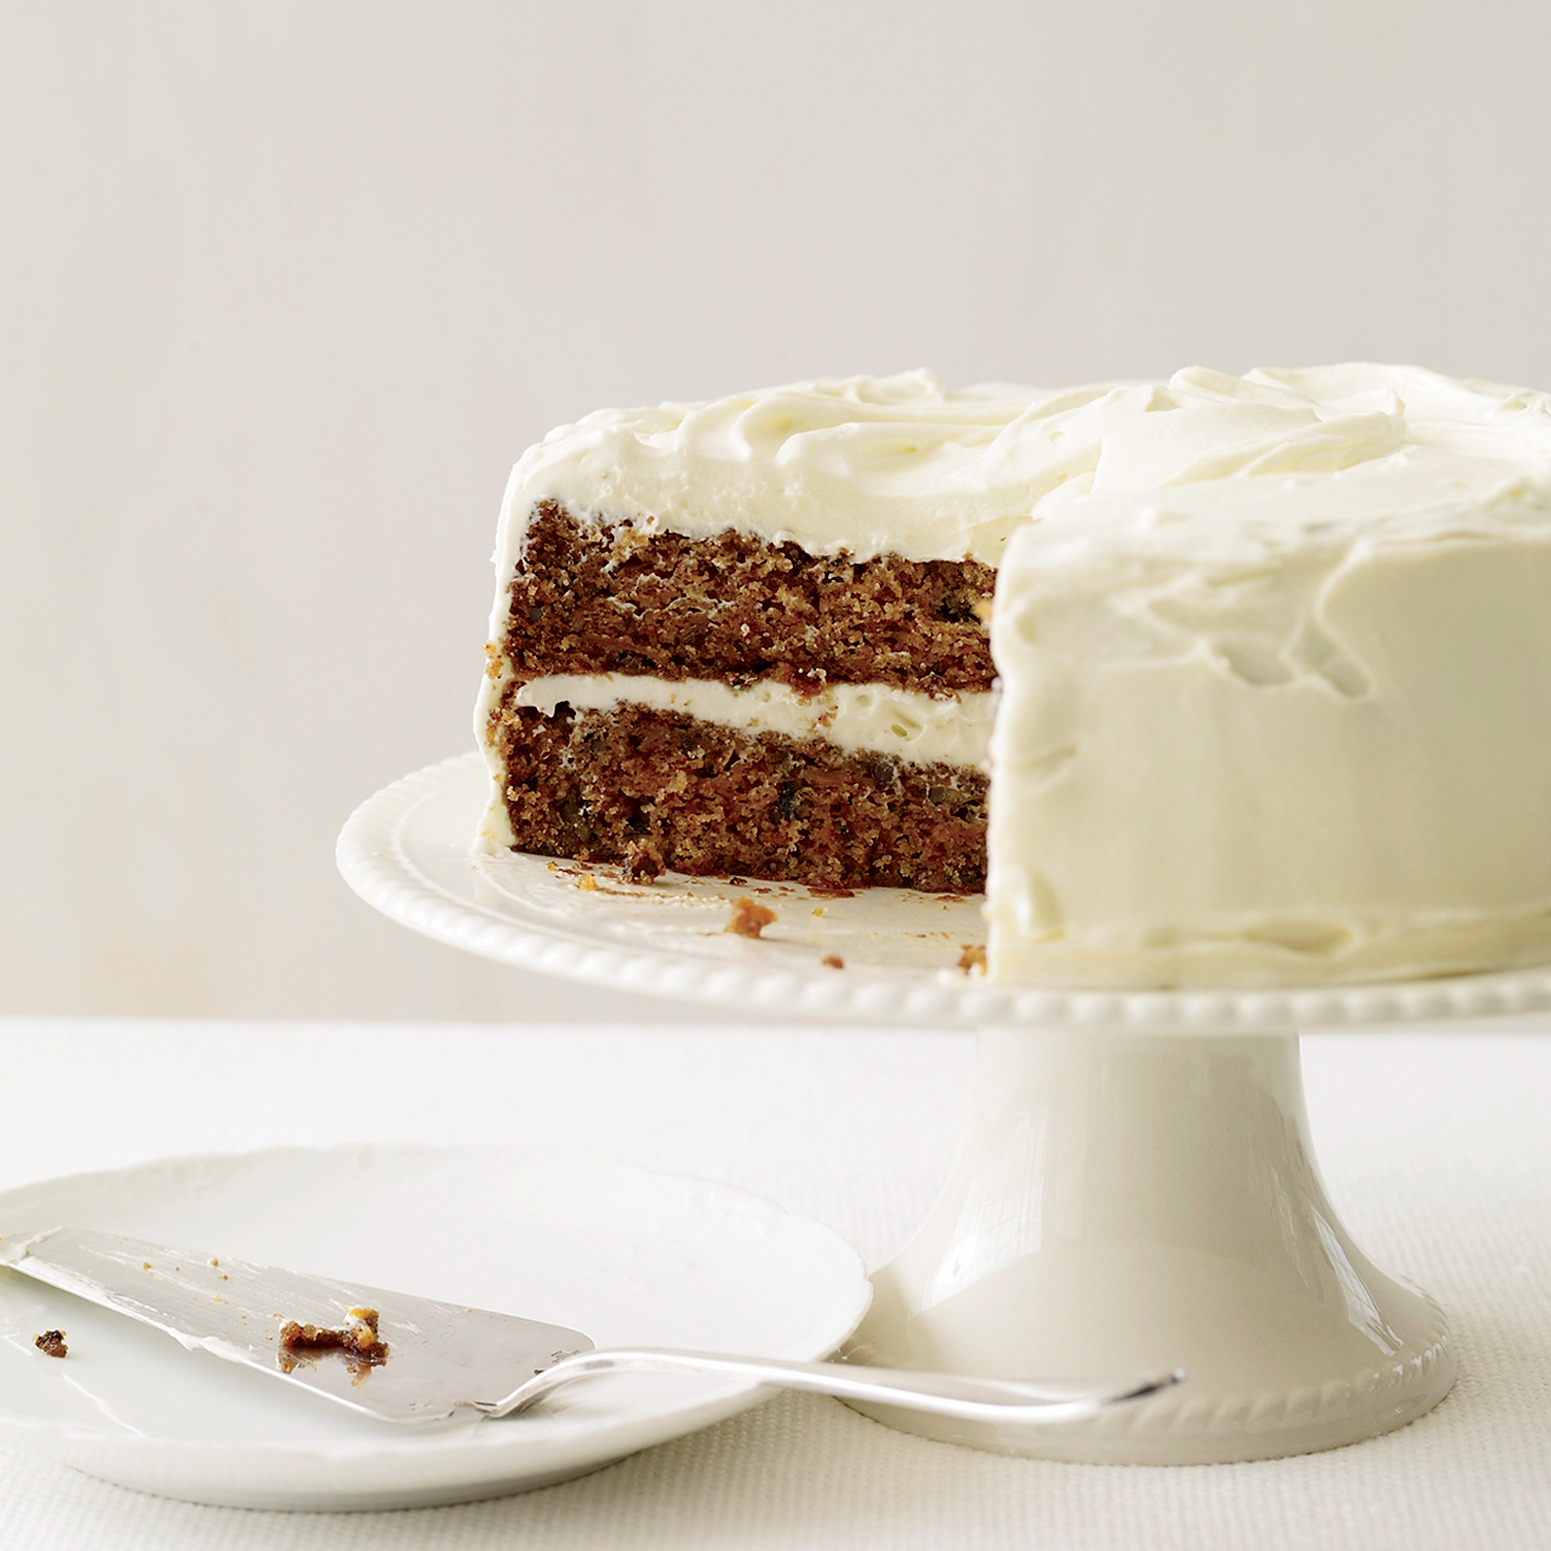 https://i0.wp.com/cdn-image.foodandwine.com/sites/default/files/200901-r-xl-classic-carrot-cake-with-fluffy-cream-cheese-frosting.jpg